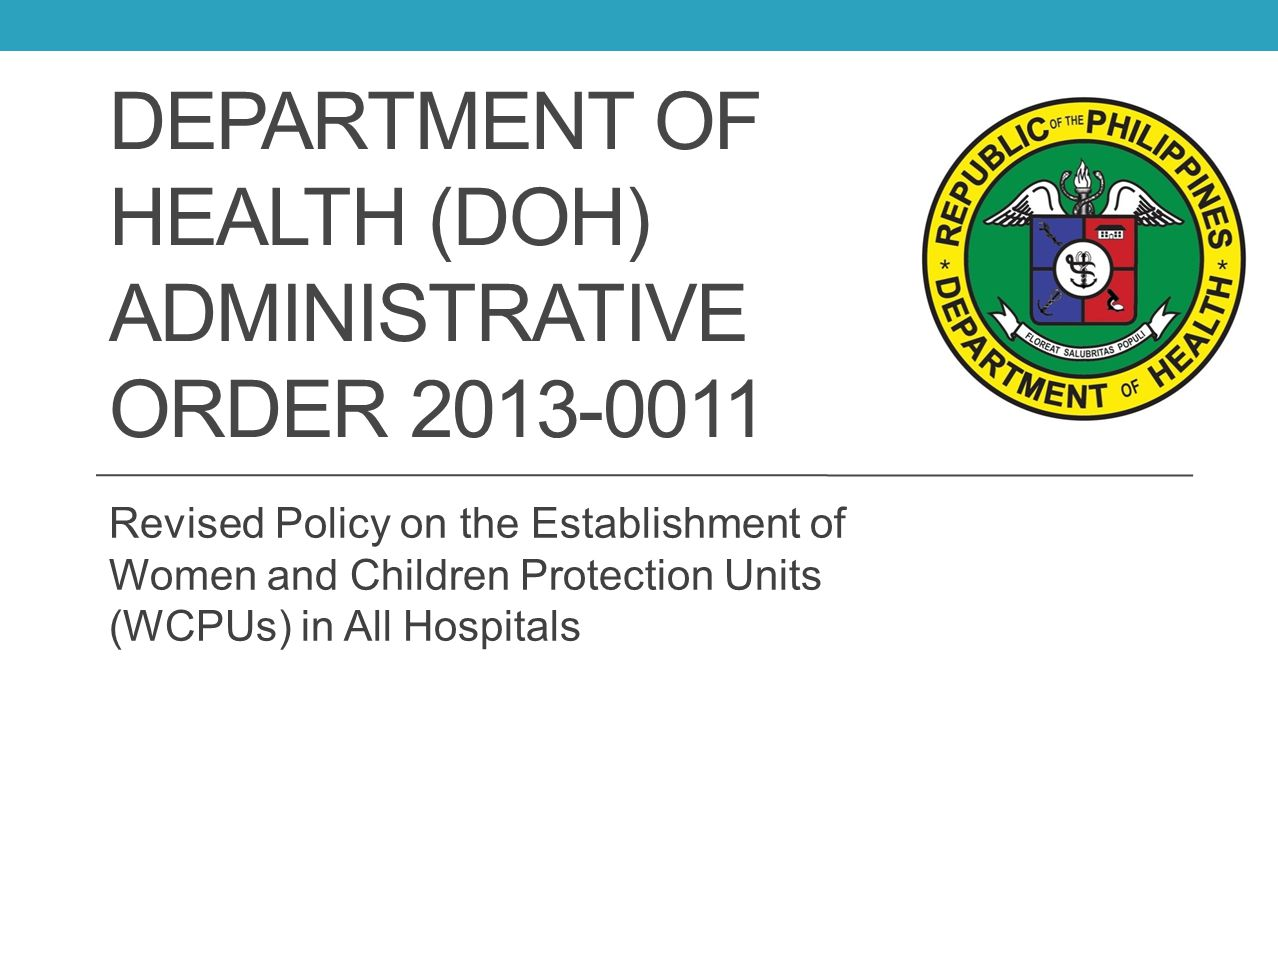 Department of Health (DOH) Administrative Order 2013-0011